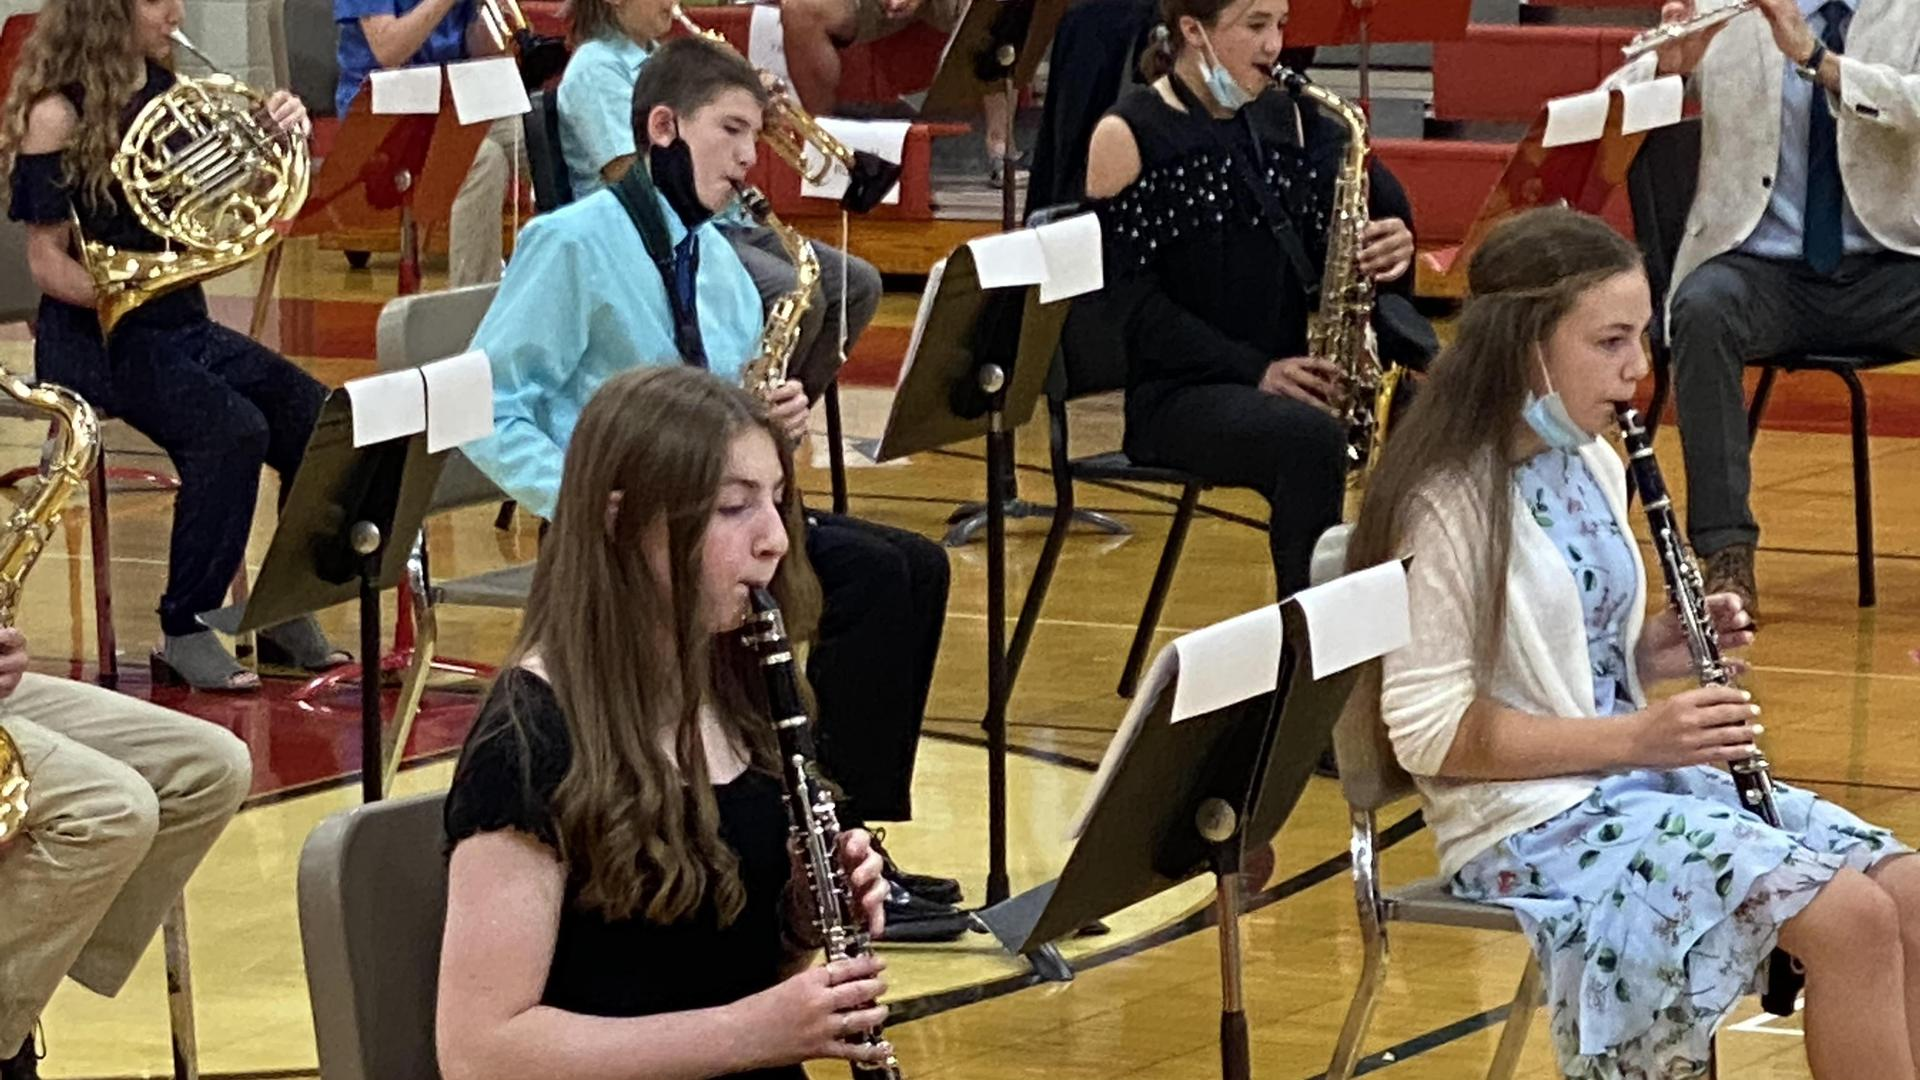 Students playing instruments in the Benjamin gym. The focus is on a clarinet player. Another clarinet player and a saxophone player can be seen clearly in the background.